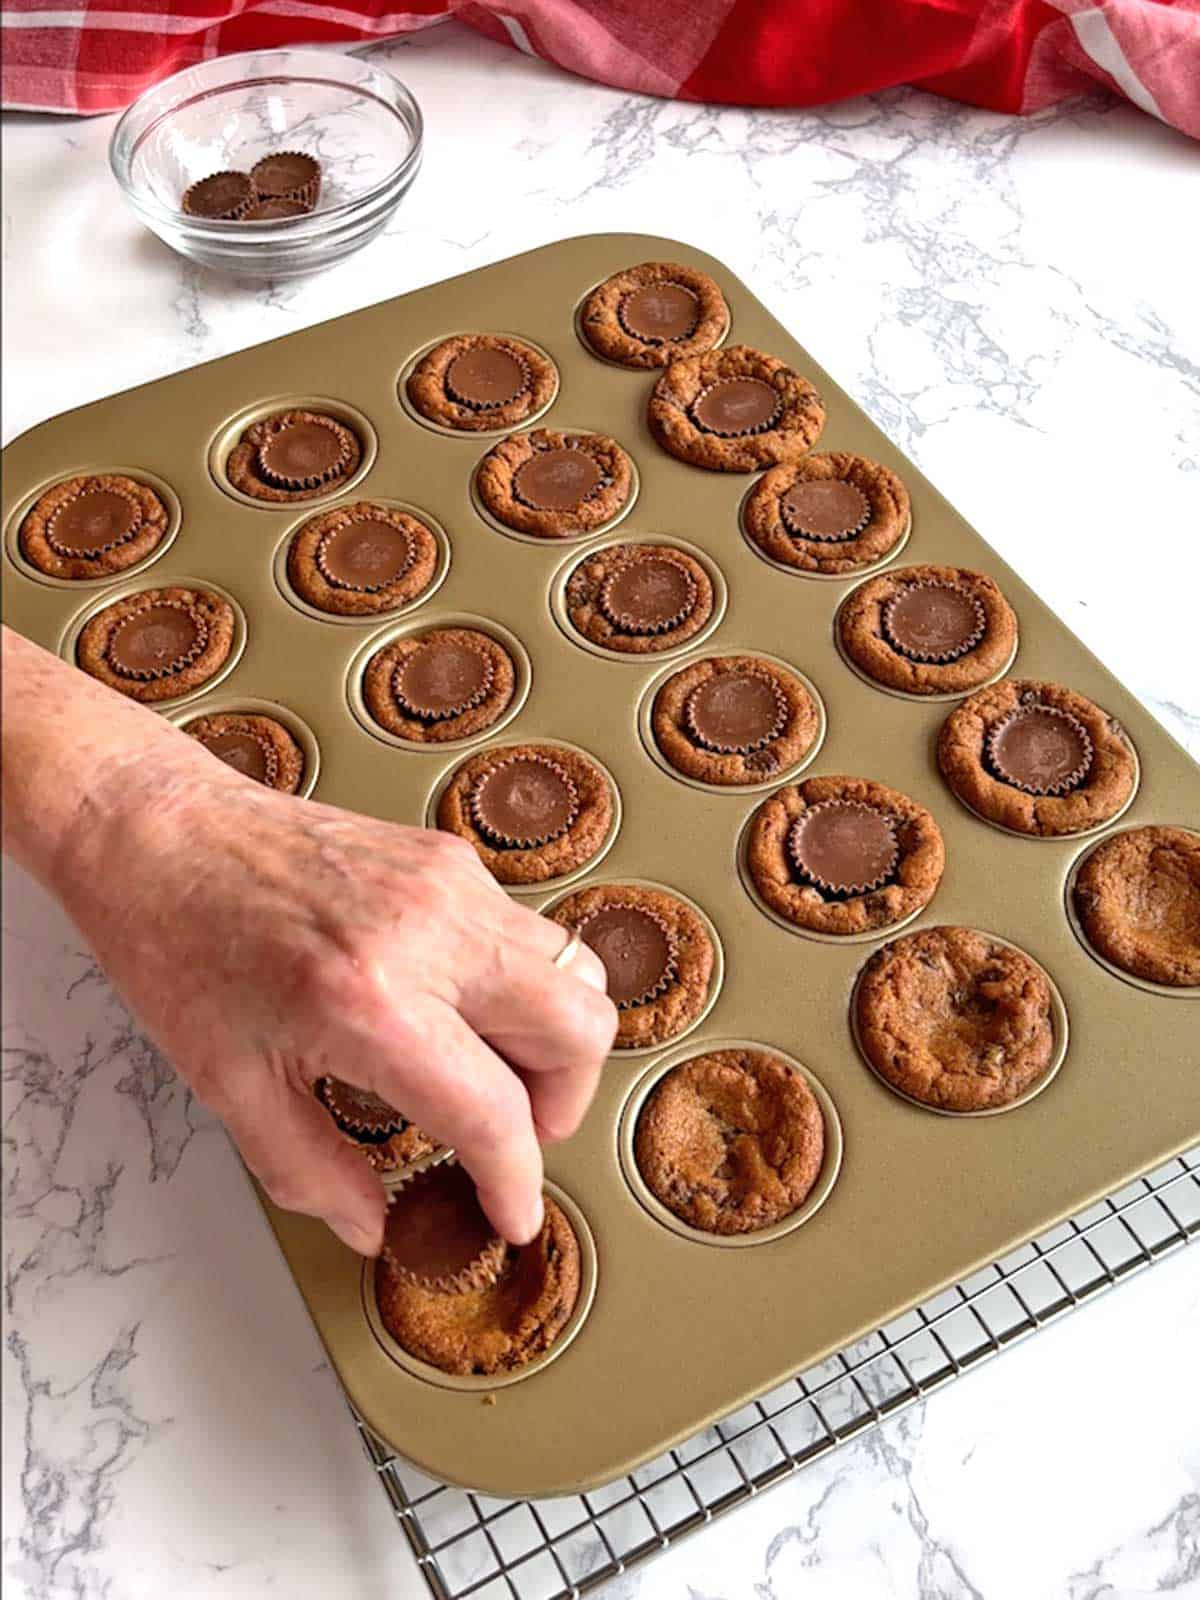 Placing Reese's Miniatures in cookie cups.